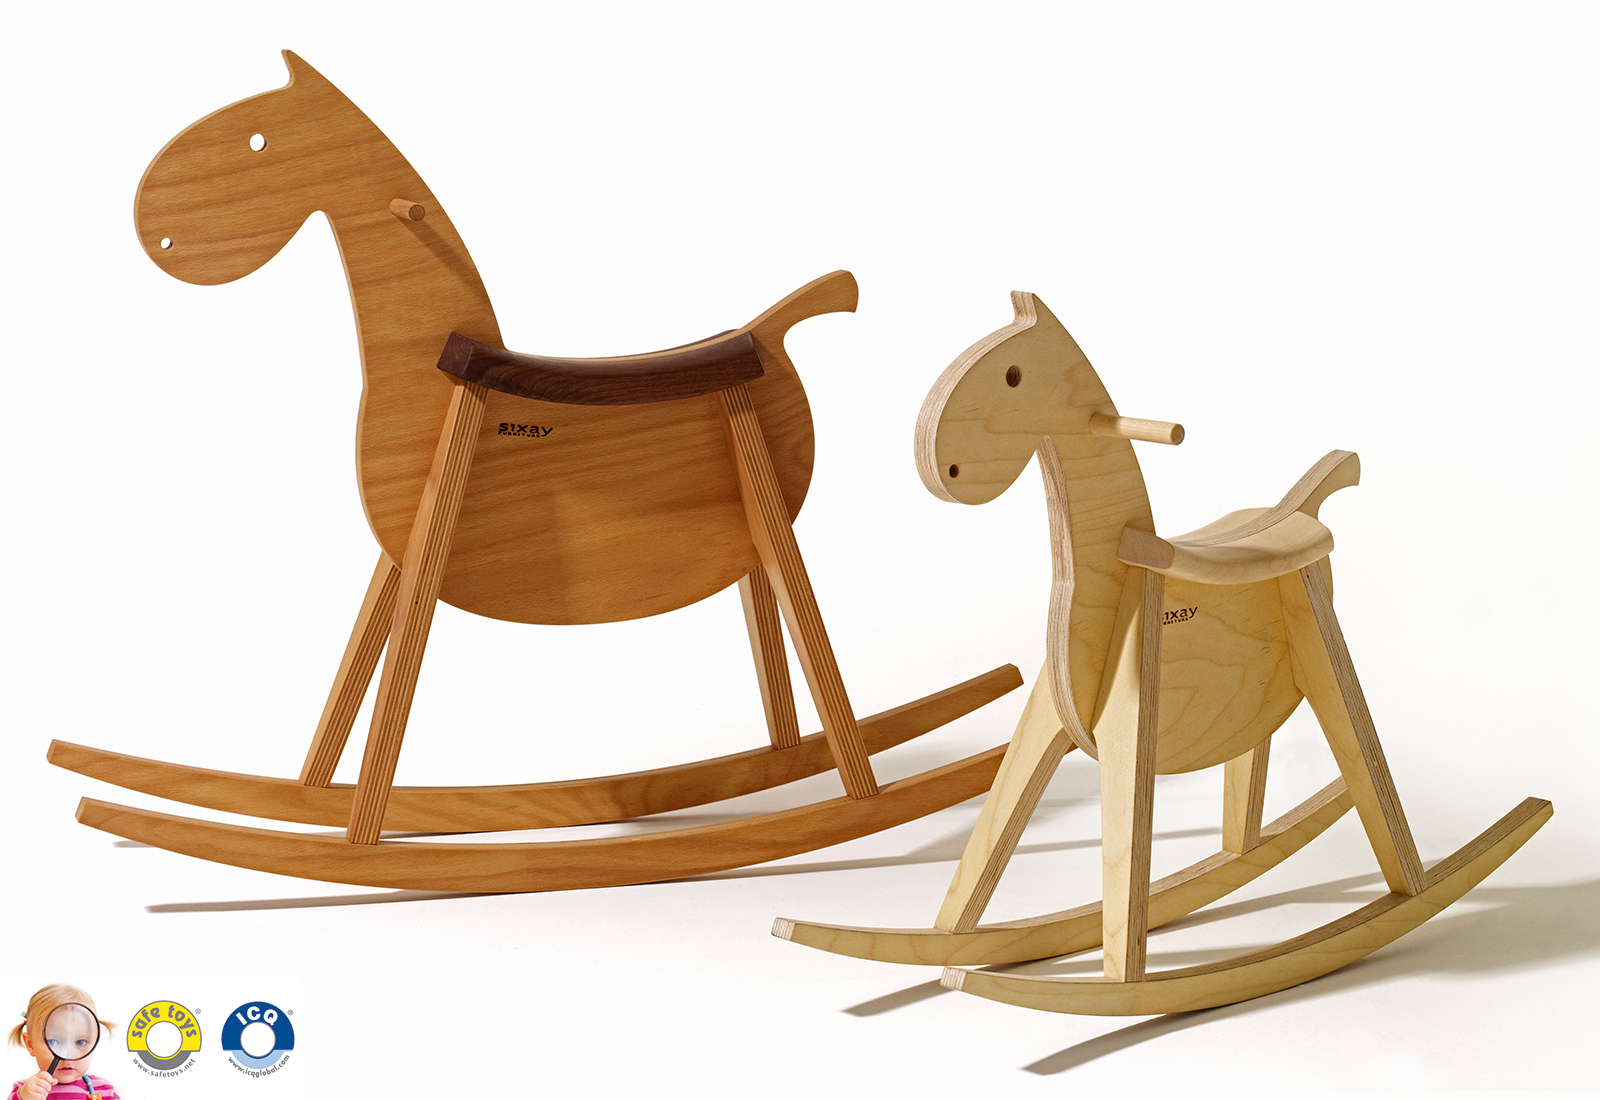 Rocking Horse MUSTANG By Sixay Furniture   Premium Solid Wood Design  Furniture   Sixay.com   Sixay.com